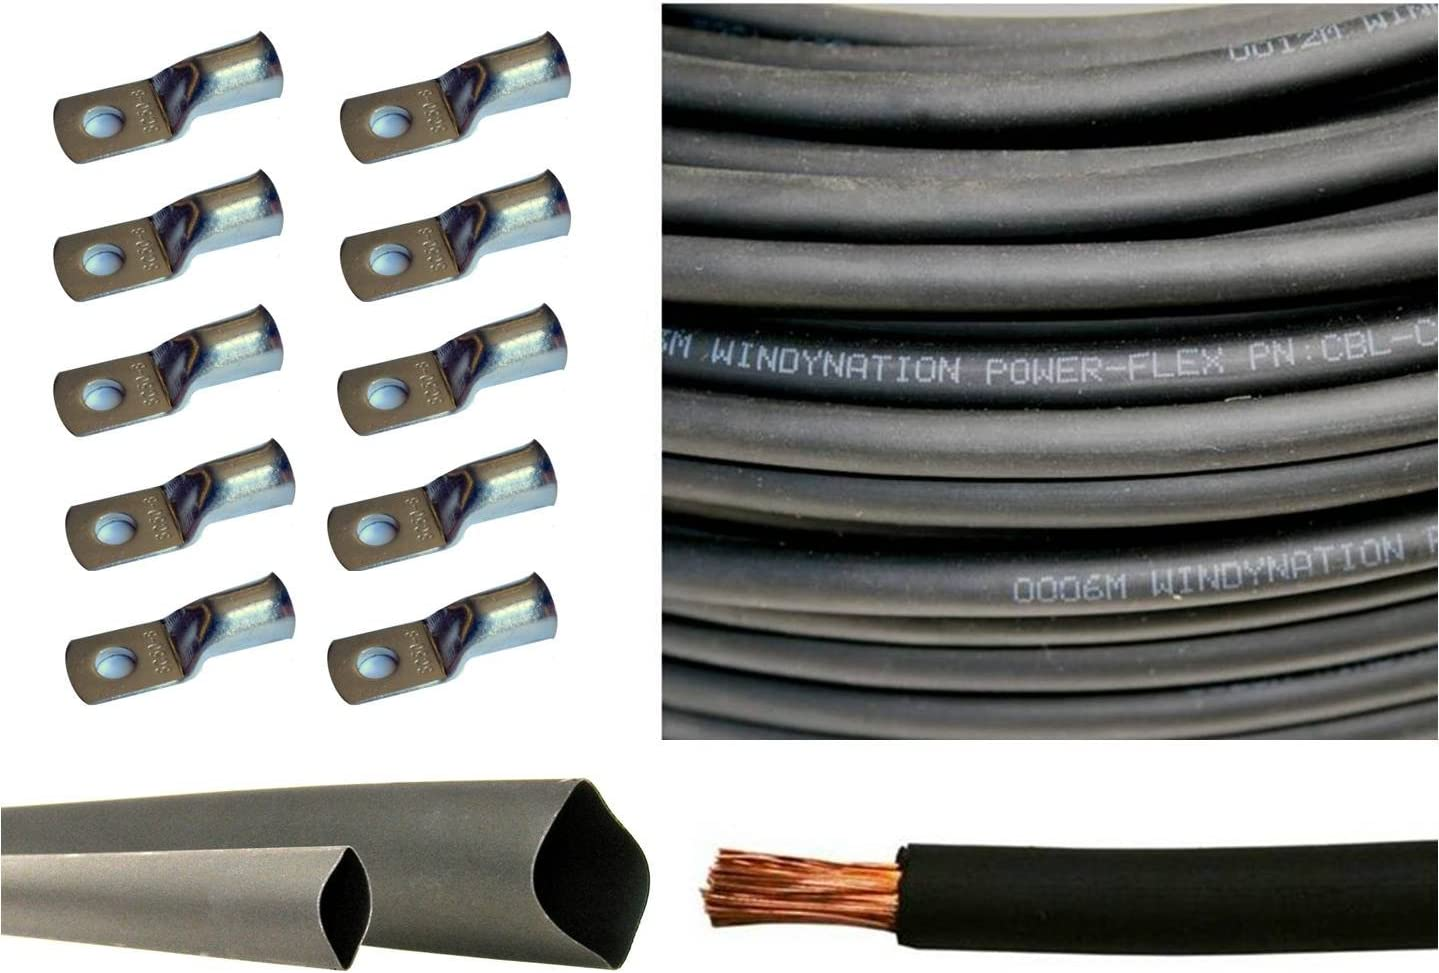 6 Gauge 6 AWG 25 Feet Black Welding Battery Pure Copper Flexible Cable 10pcs of 3//8 Tinned Copper Cable Lug Terminal Connectors 3 Feet Black Heat Shrink Tubing